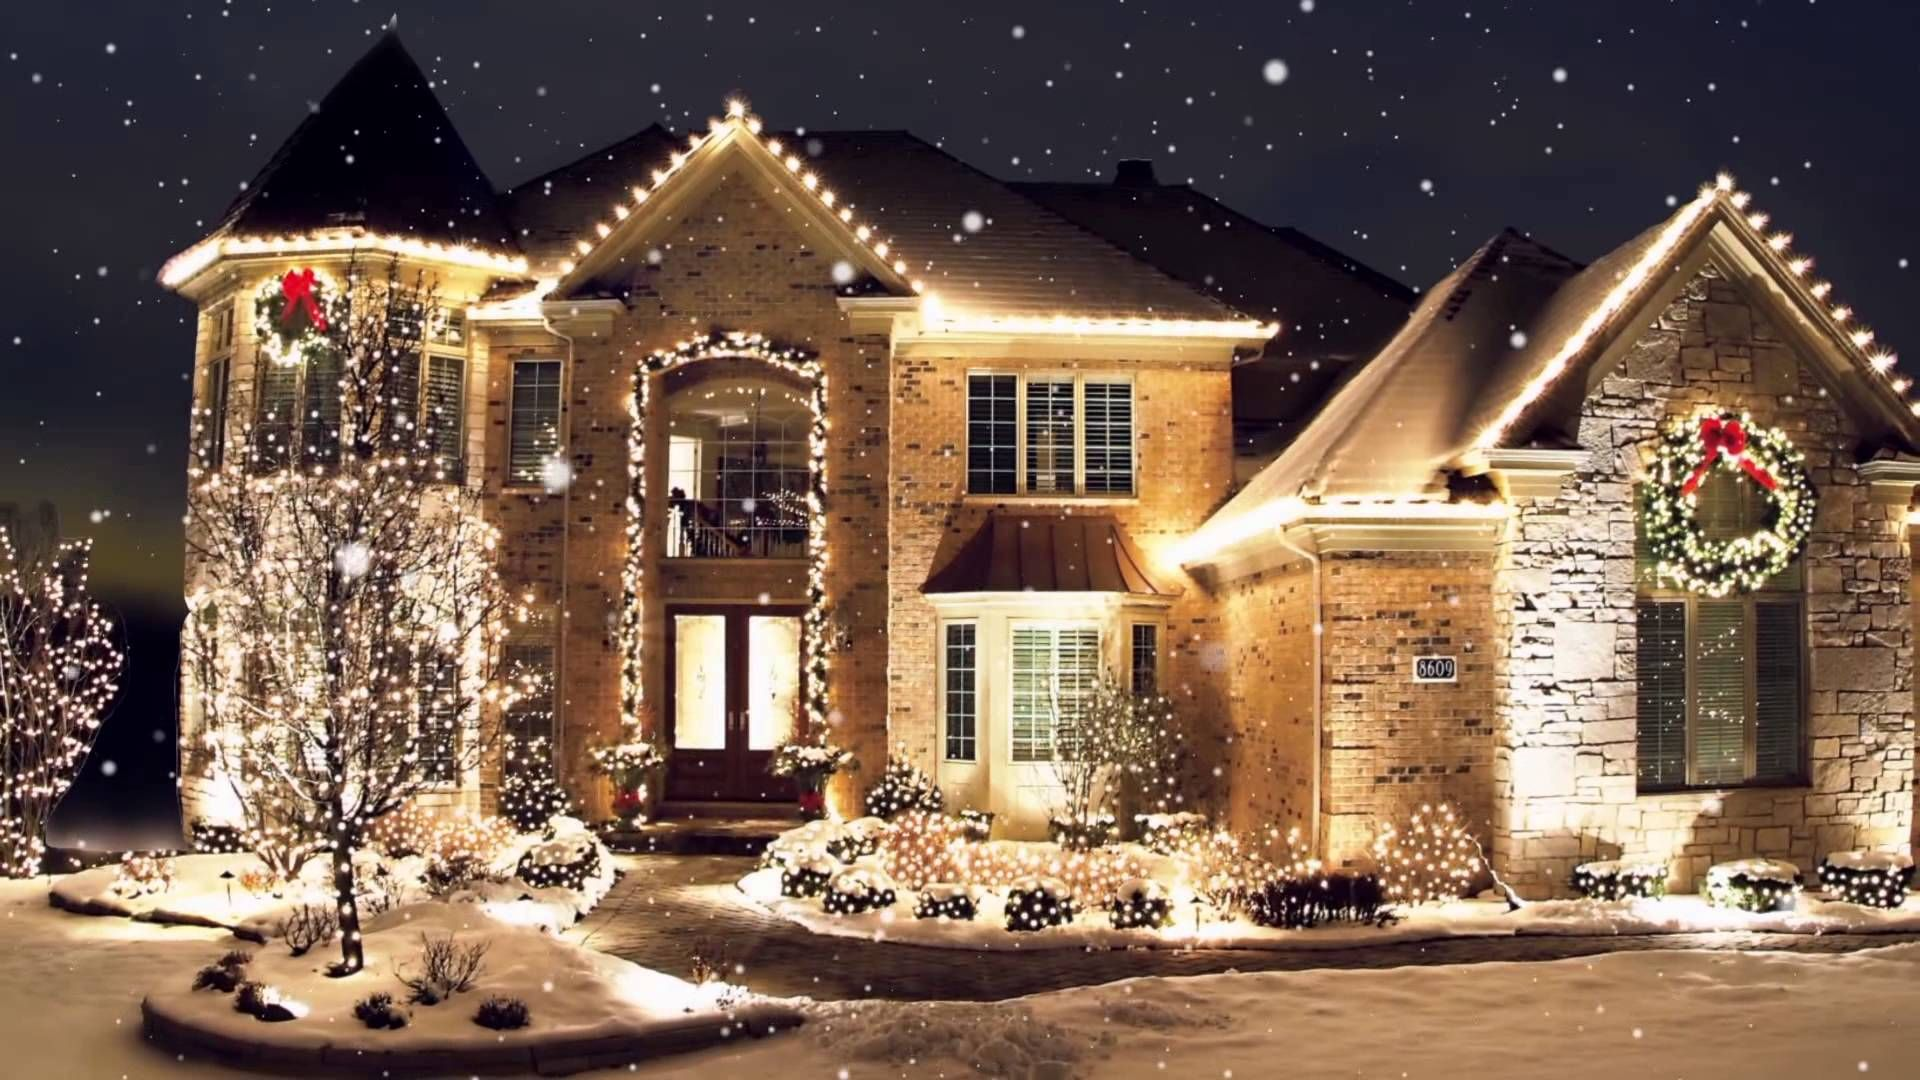 Christmas Lights Installer.Christmas Lights Installation Installers Contractors Colo